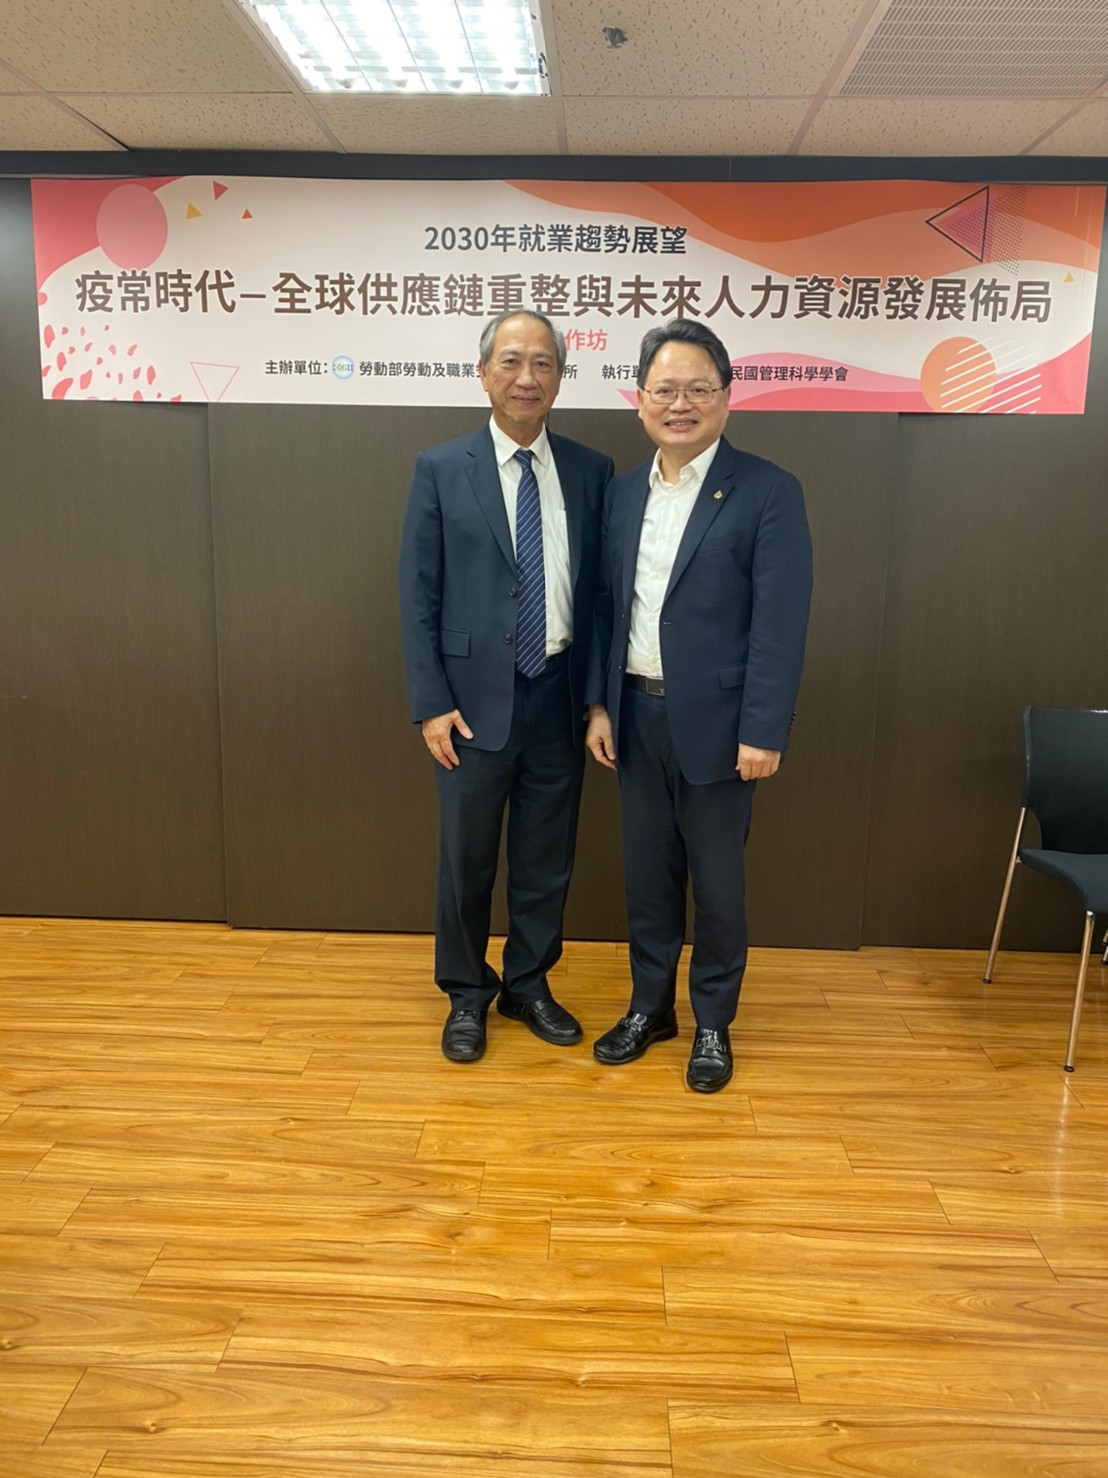 President Chen was invited to participate the co-create Global Supply Chain Reorganization and Future Human Resources Devevelopment